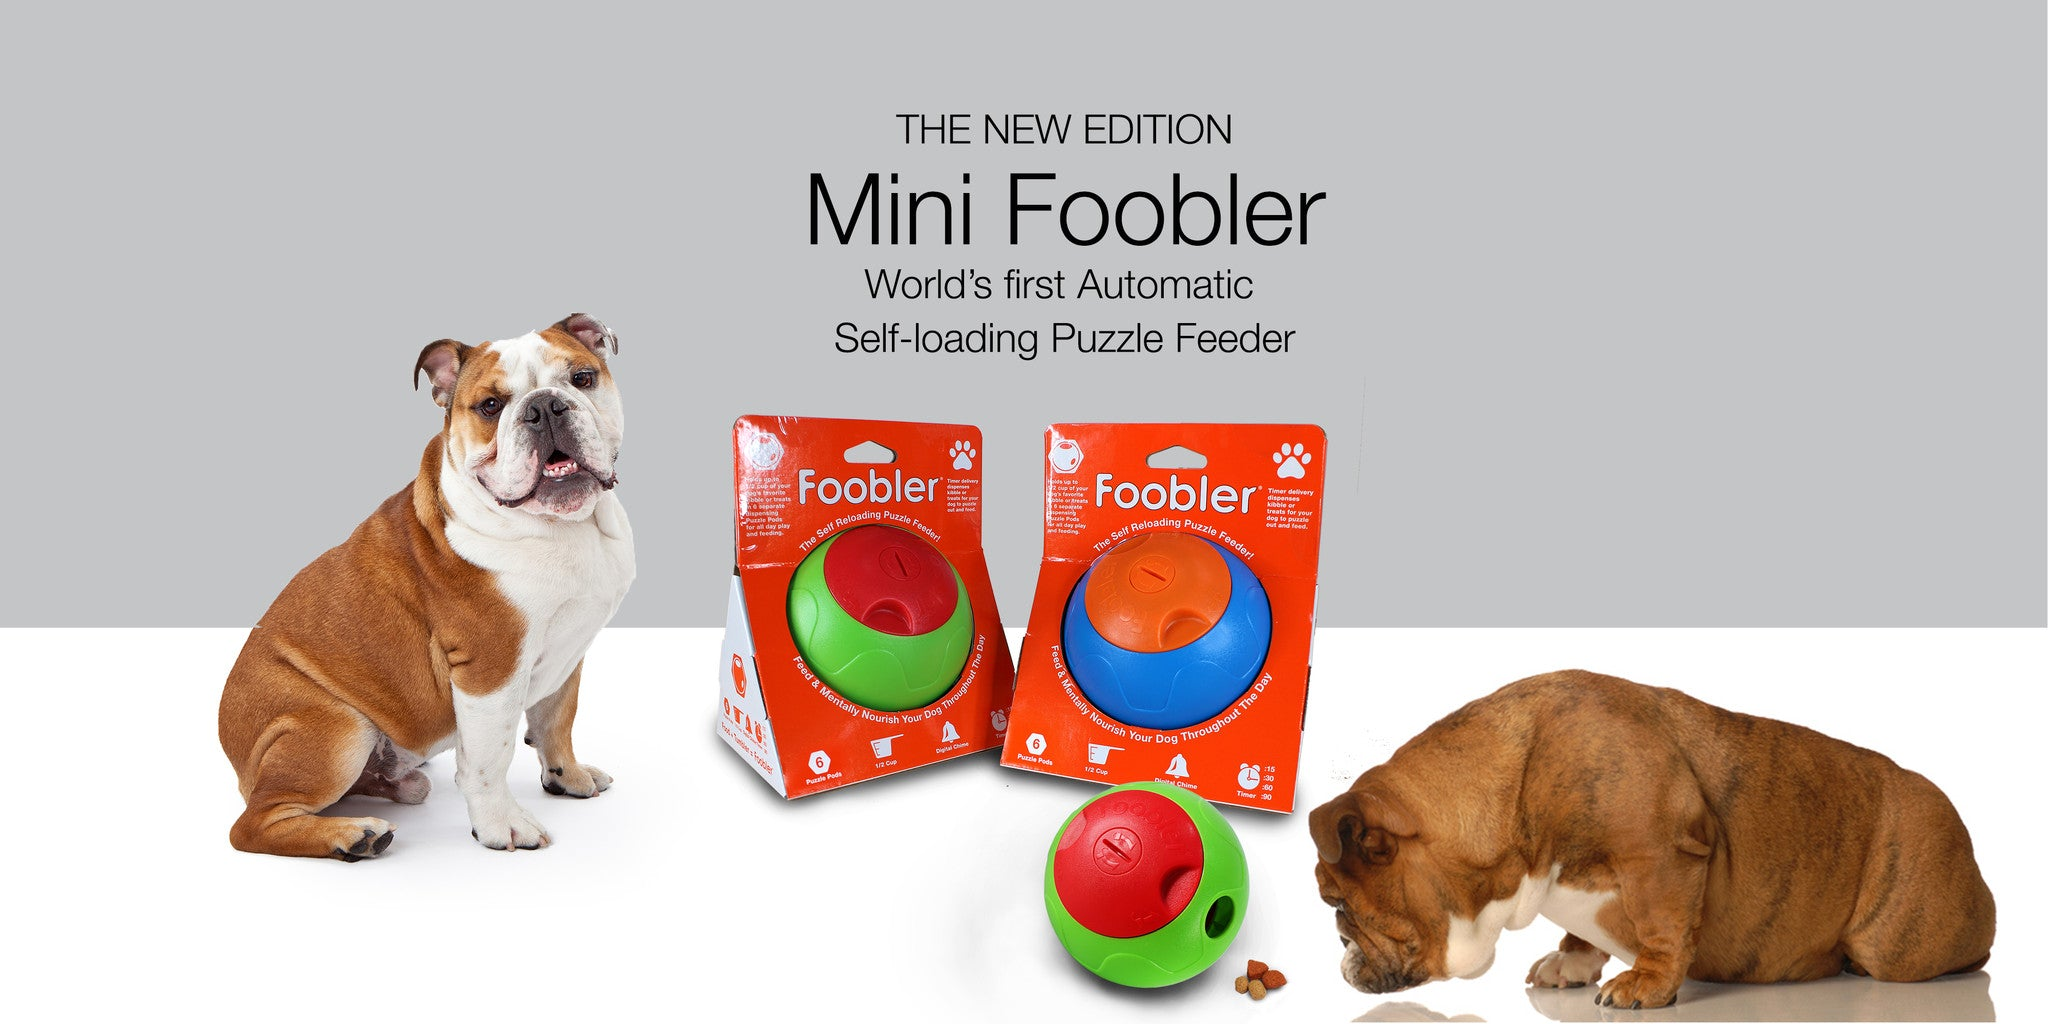 td food timer dp up amazon dog meals a cats for co dispenser to automatic pet feeder dogs day supplies design uk